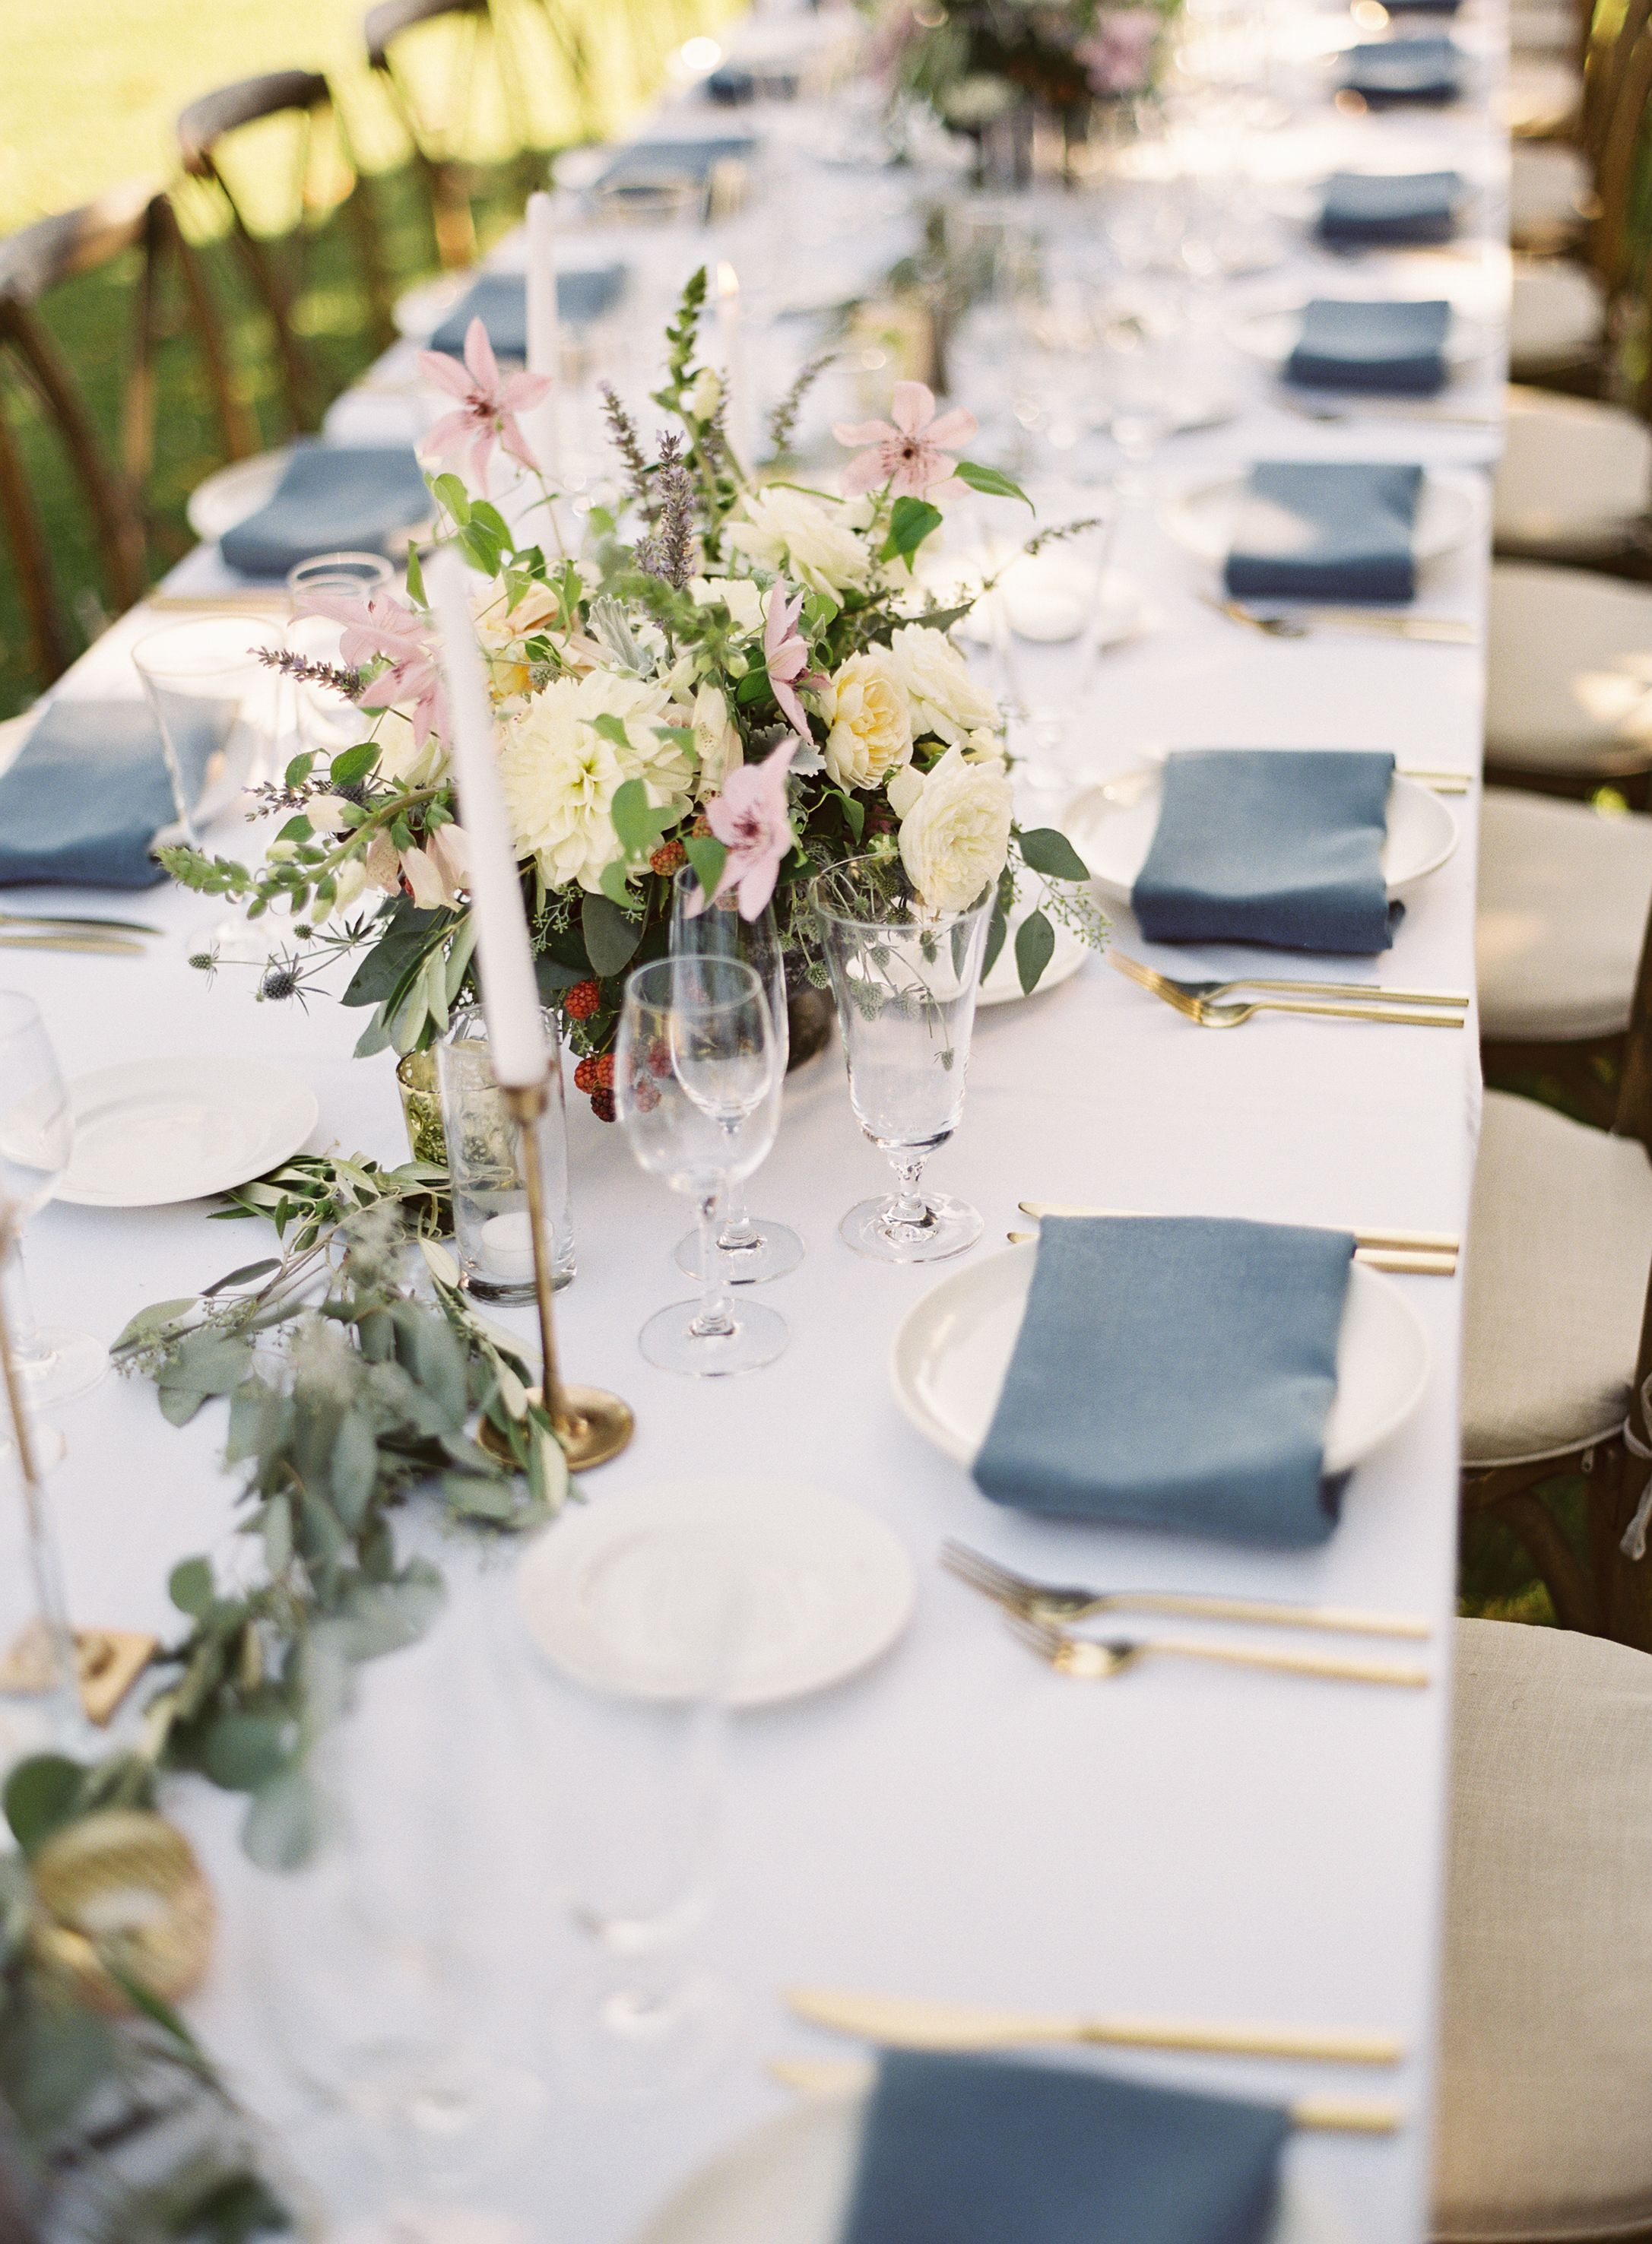 Finding The Most Picturesque Wedding Venue Via Pinterest Rustic